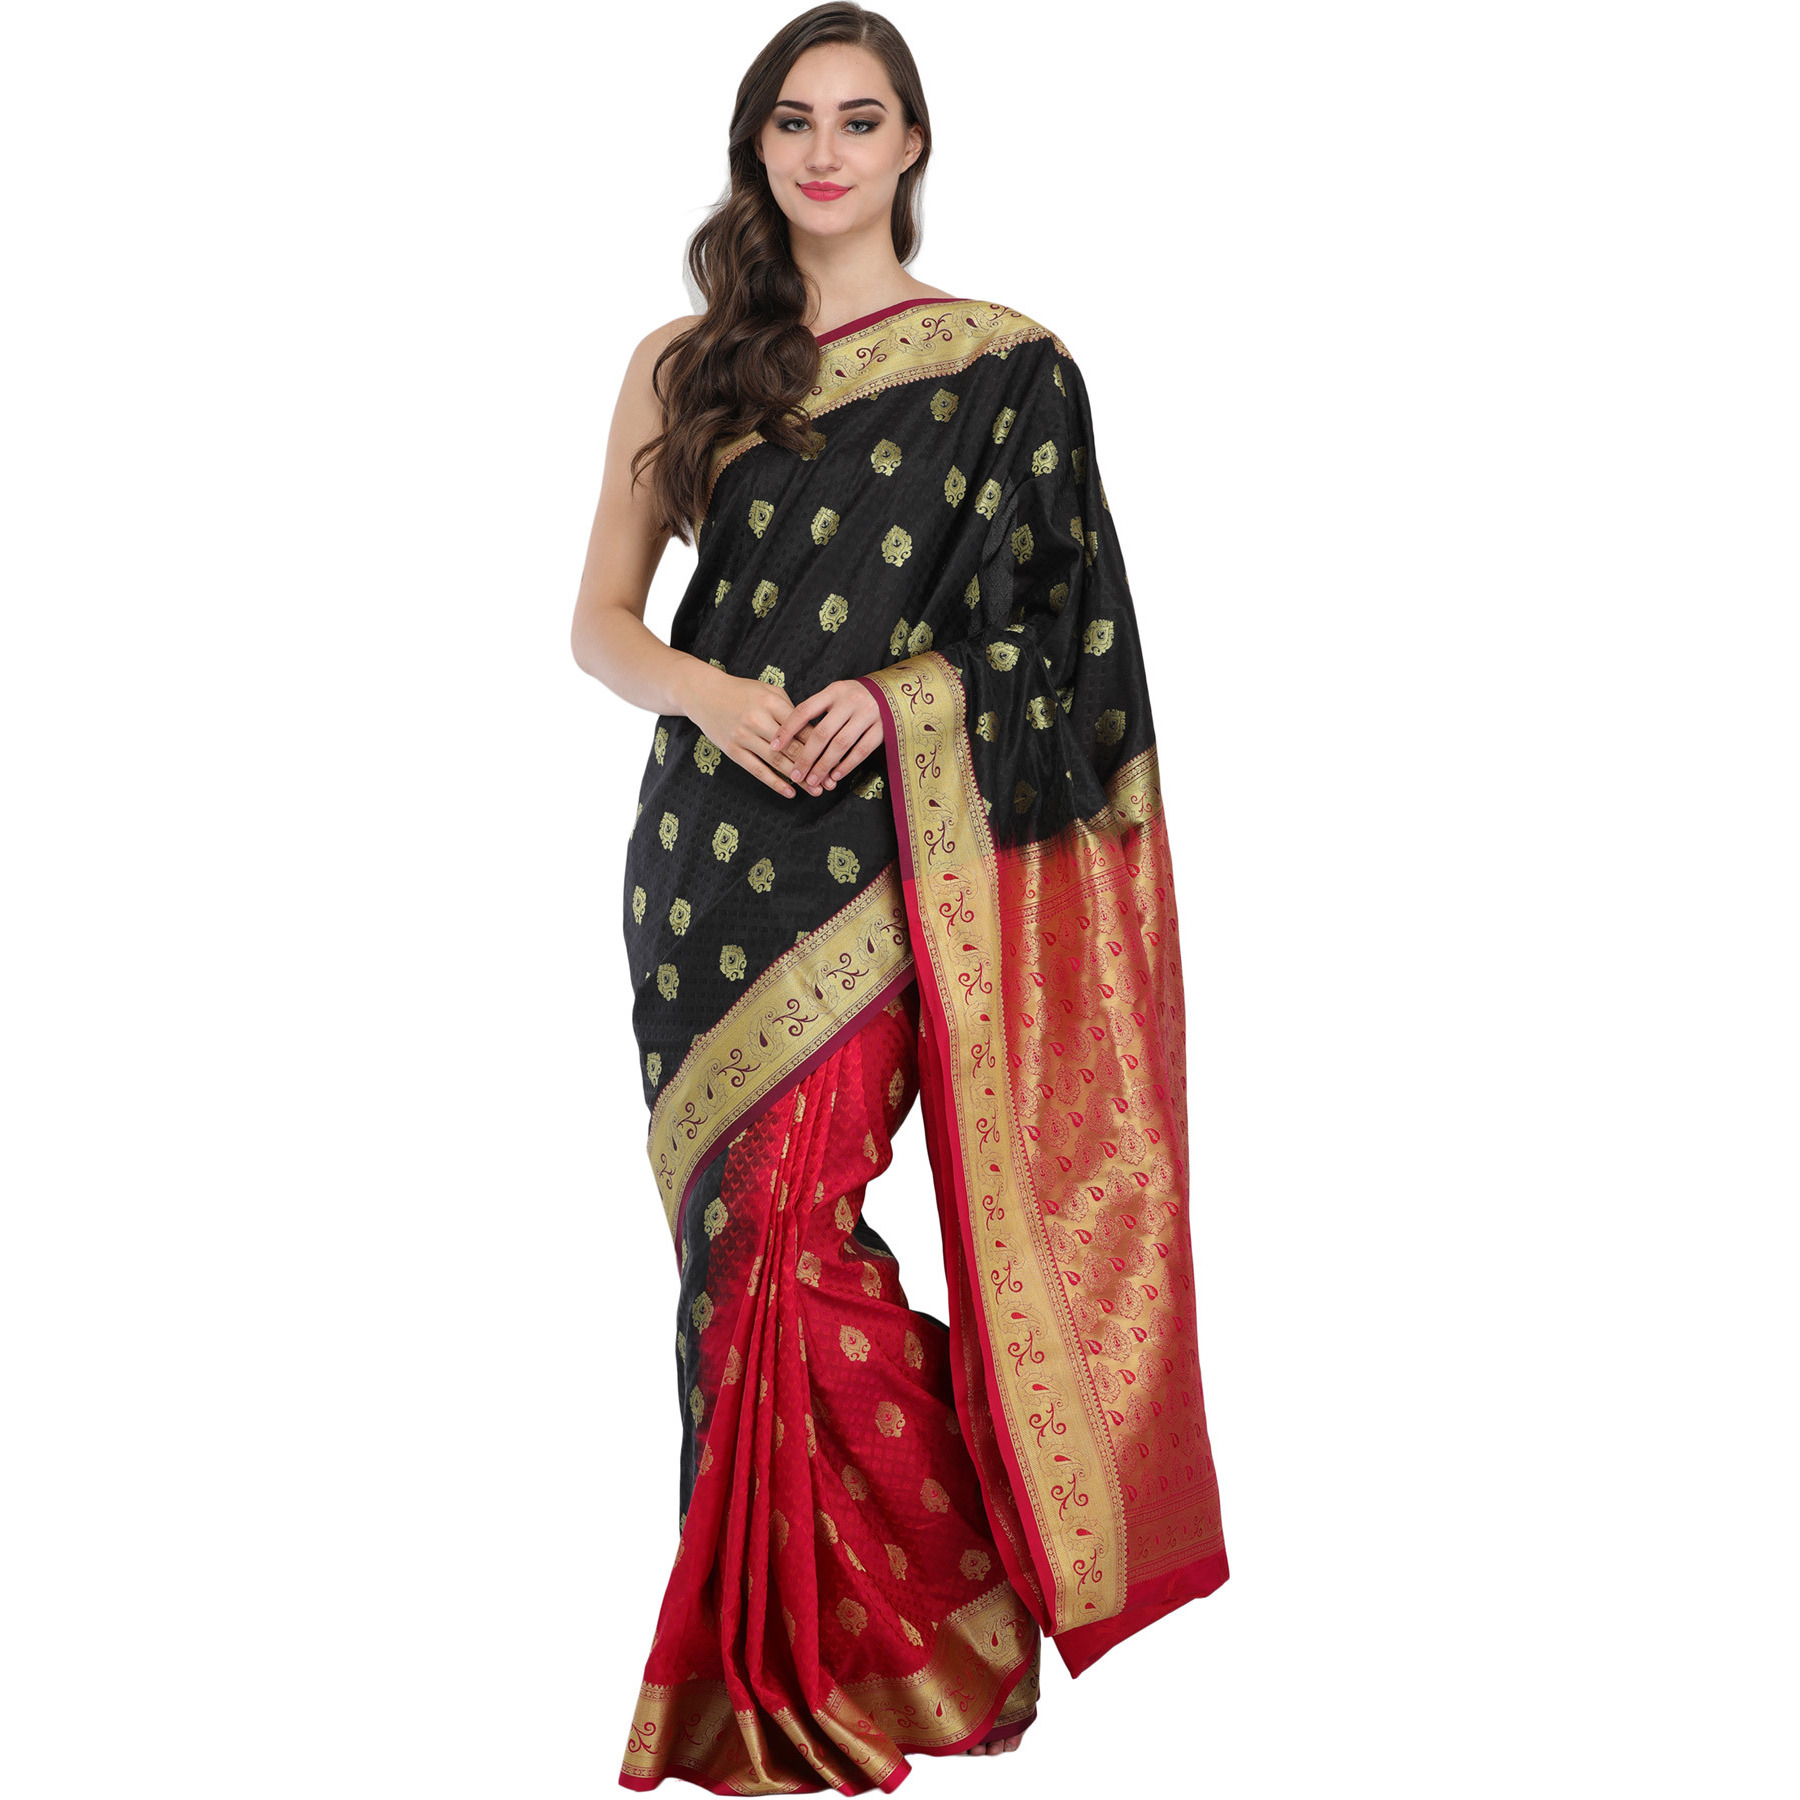 Black and Red Double-Shaded Wedding Sari from Bangalore with Golden Bootis and Brocaded Pallu